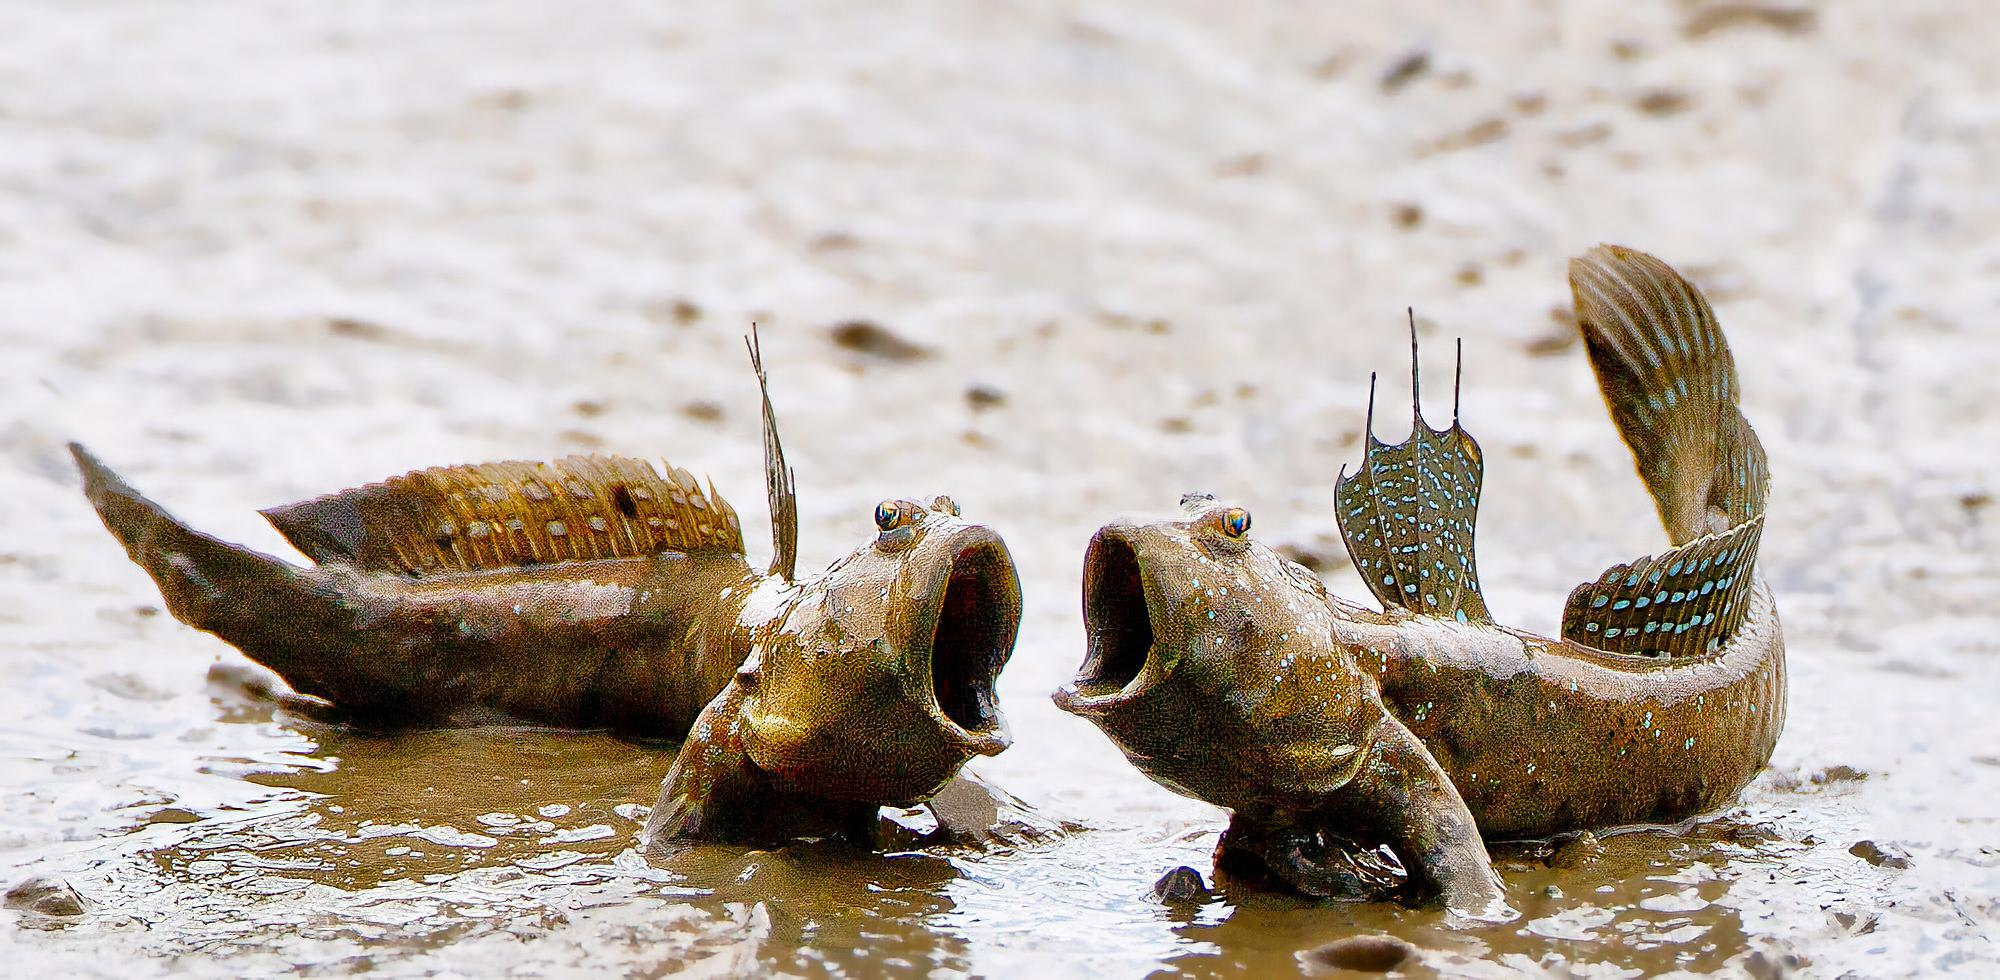 Mudskipper photo